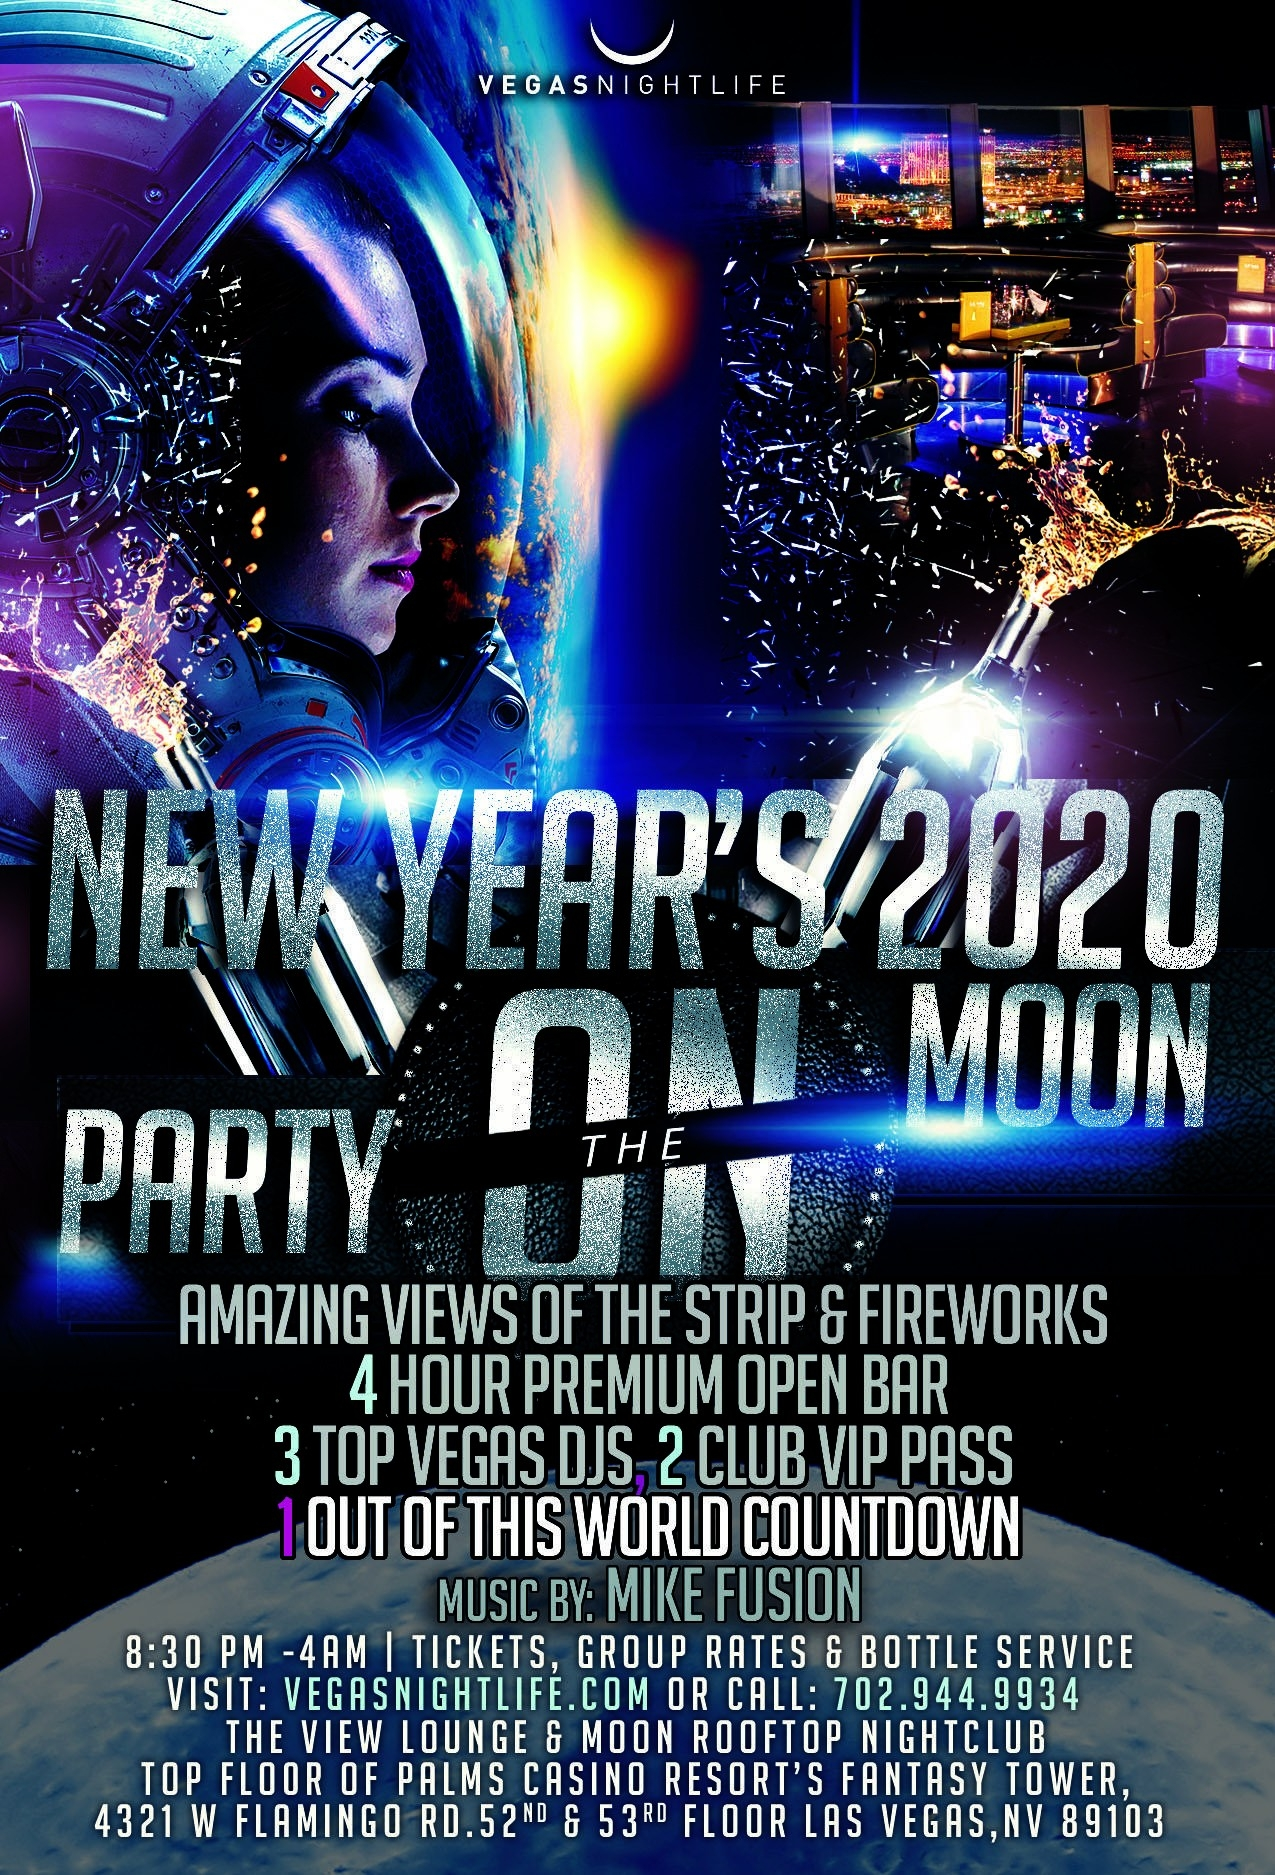 Party On The Moon - Las Vegas New Year's Eve 2020 • Gongago-Las Vegas Event Calendar January 2020